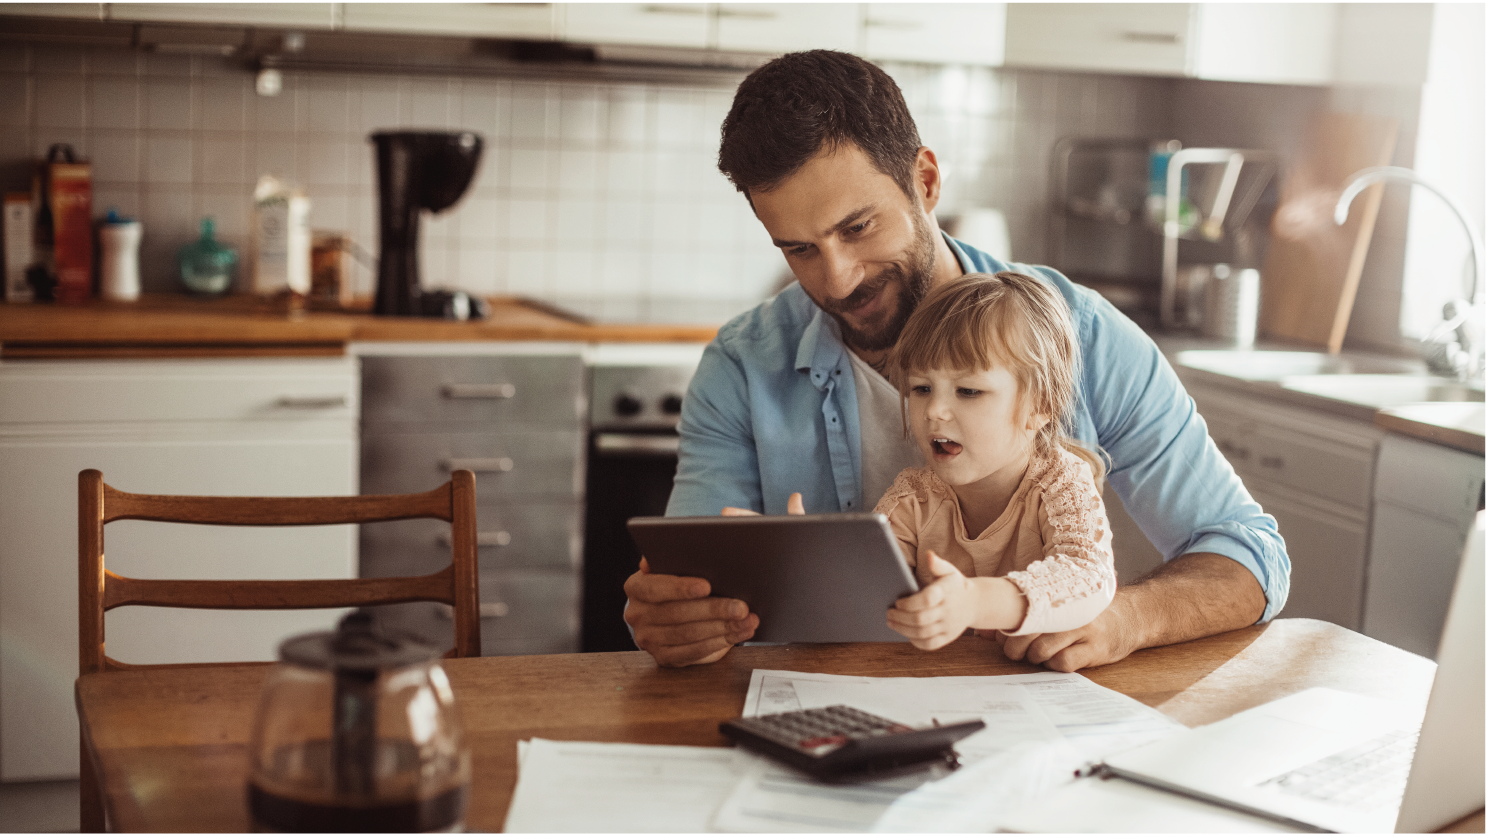 Dad on tablet and kitchen table with young daughter